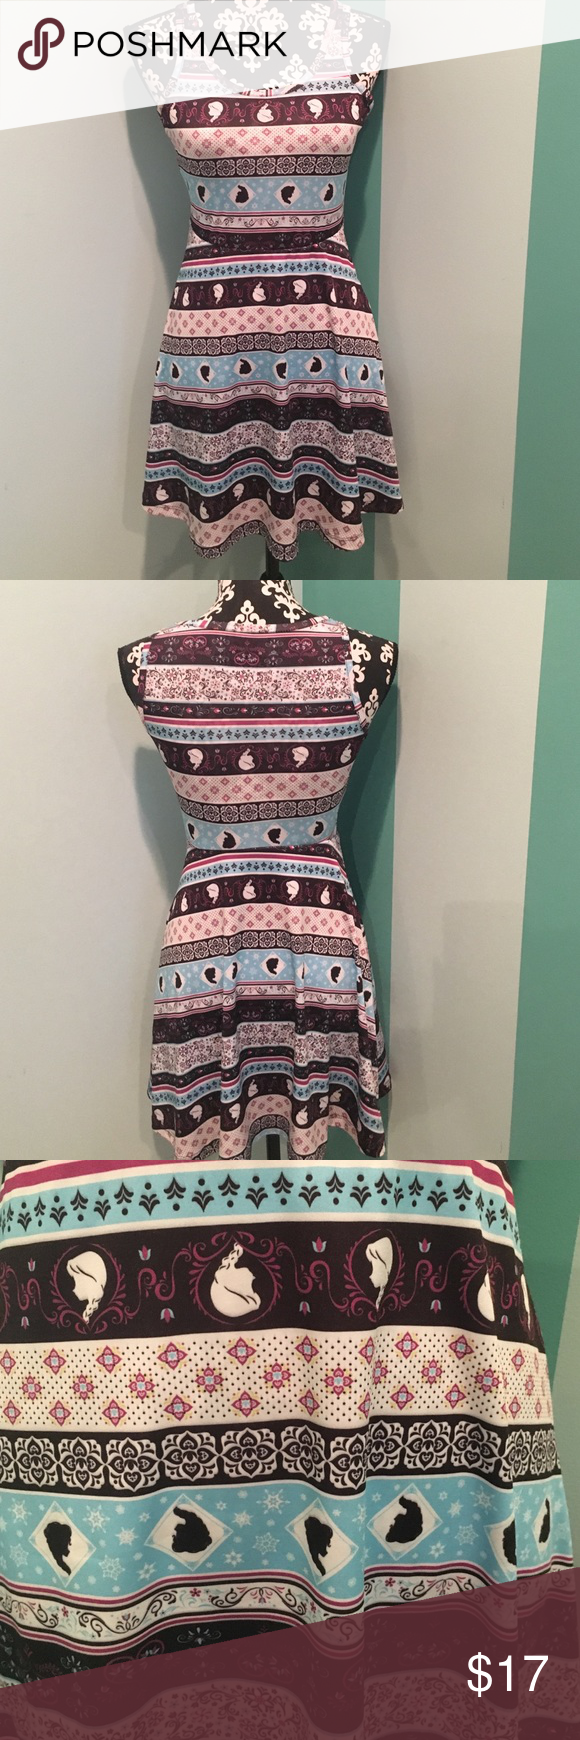 Fun and Adorable Frozen Dress! Show off your love of the movie Frozen with this fun and adorable dress! This dress is adorable and looks adorable on! Has a cute pattern on as seen in the picture! Have only worn once is in excellent condition and is need of a new home and to see the outside of a closet! Also with every purchase you get a free treat! 😀 Hot Topic Dresses